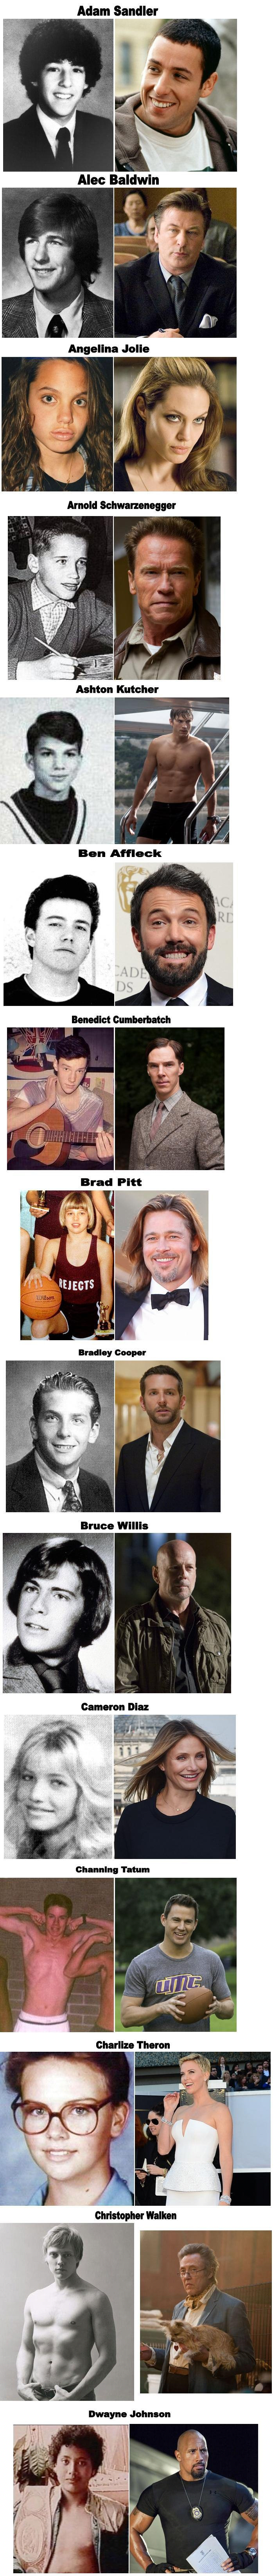 Famous Celebrities: Then and Now